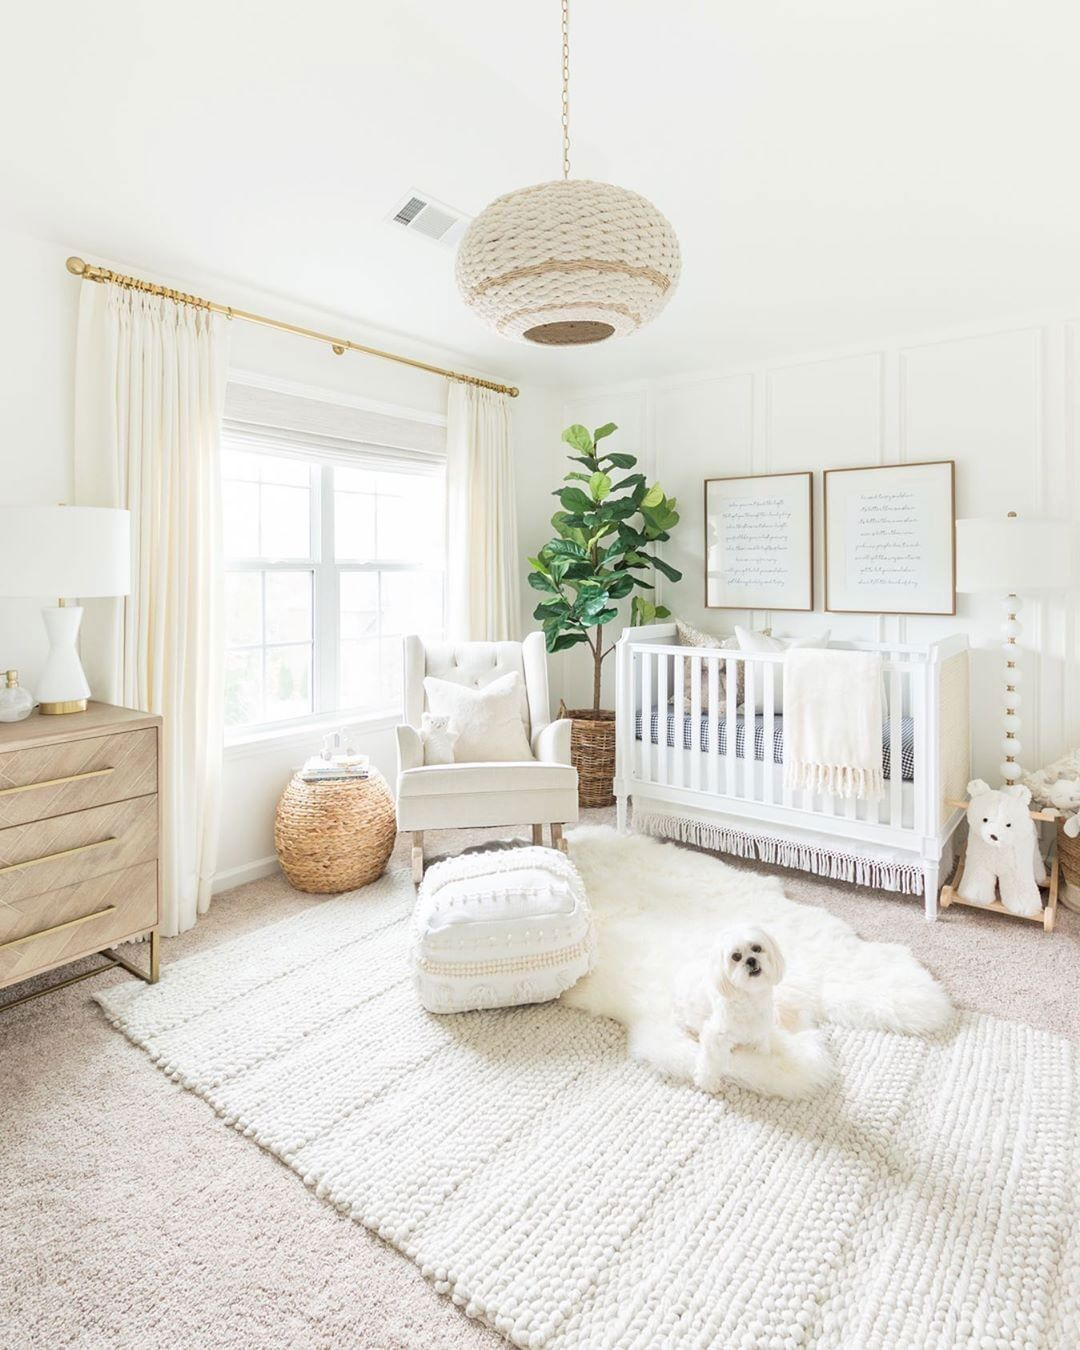 How To Bring A Natural Vibe To The Nursery Idee Deco Chambre Bebe Fille Decoration Chambre Bebe Deco Chambre Bebe